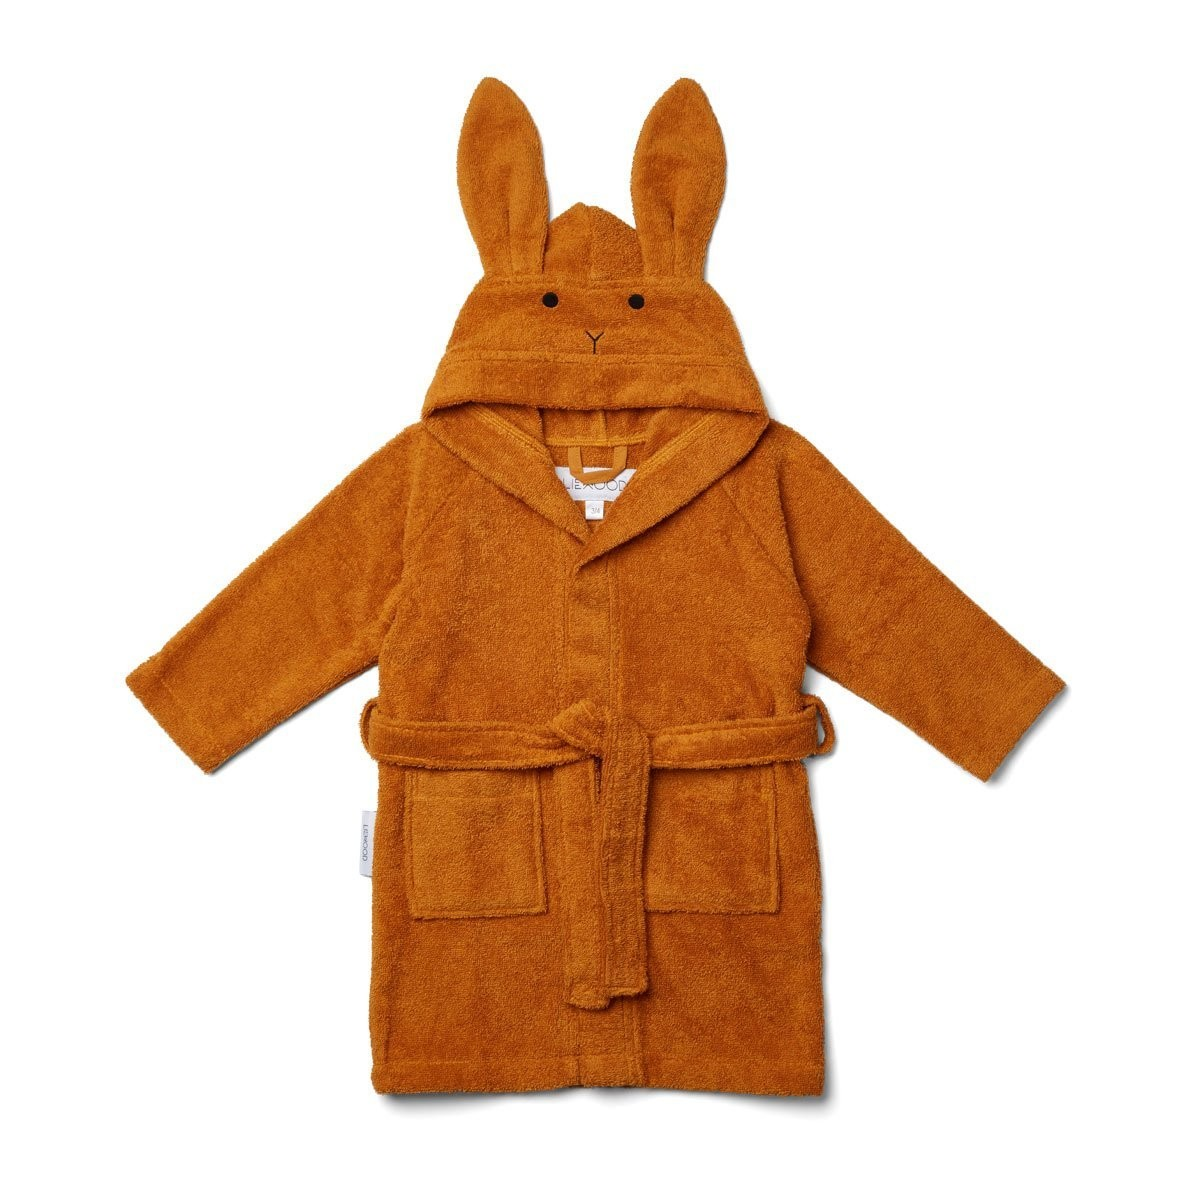 Bathrobe-Bathrobe-LW12387-0130_Rabbit_mustard